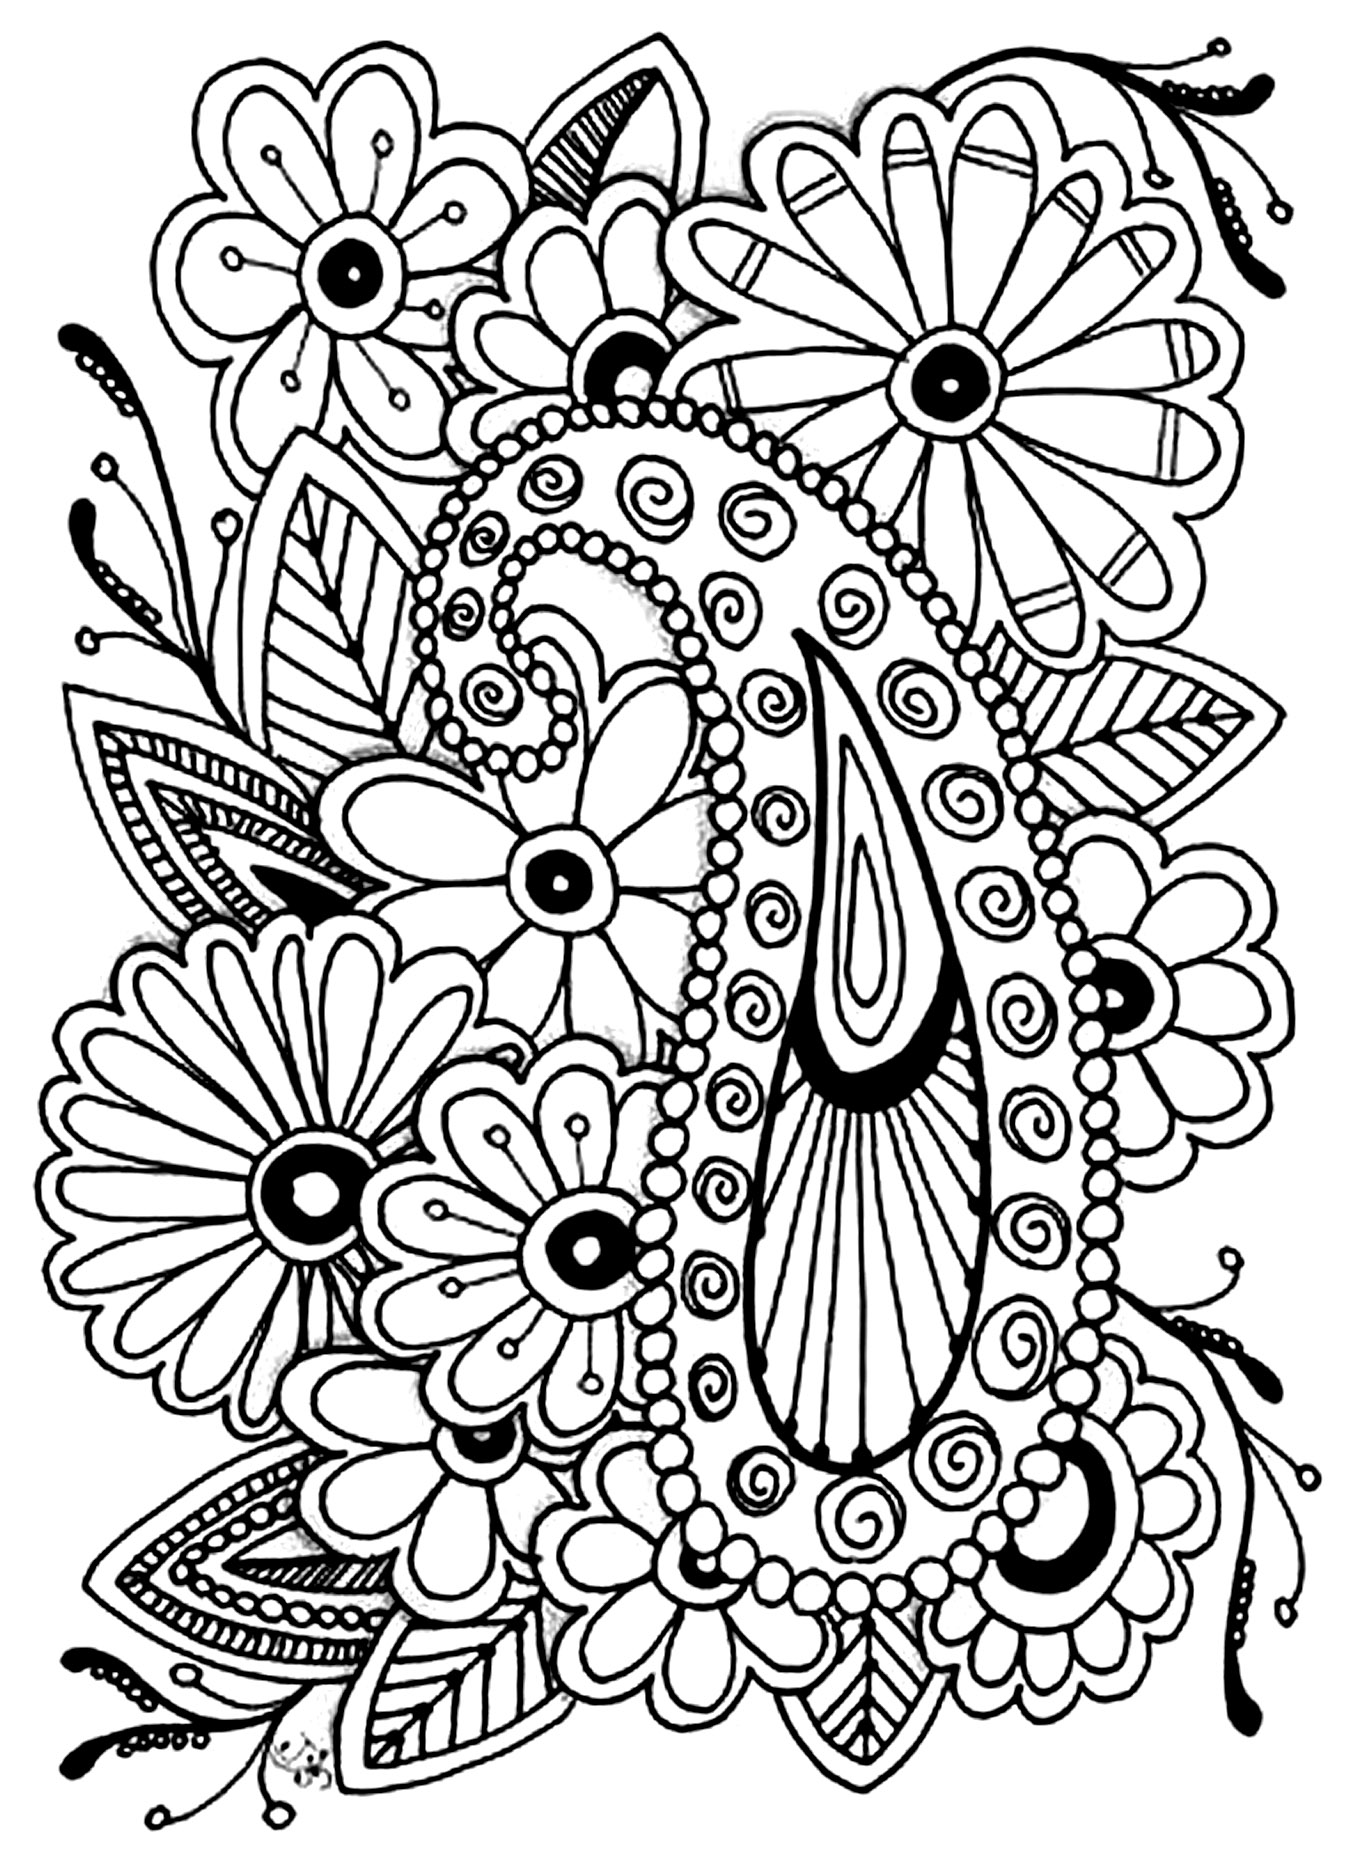 flower coloring pages adults flower coloring pages for adults best coloring pages for coloring pages adults flower